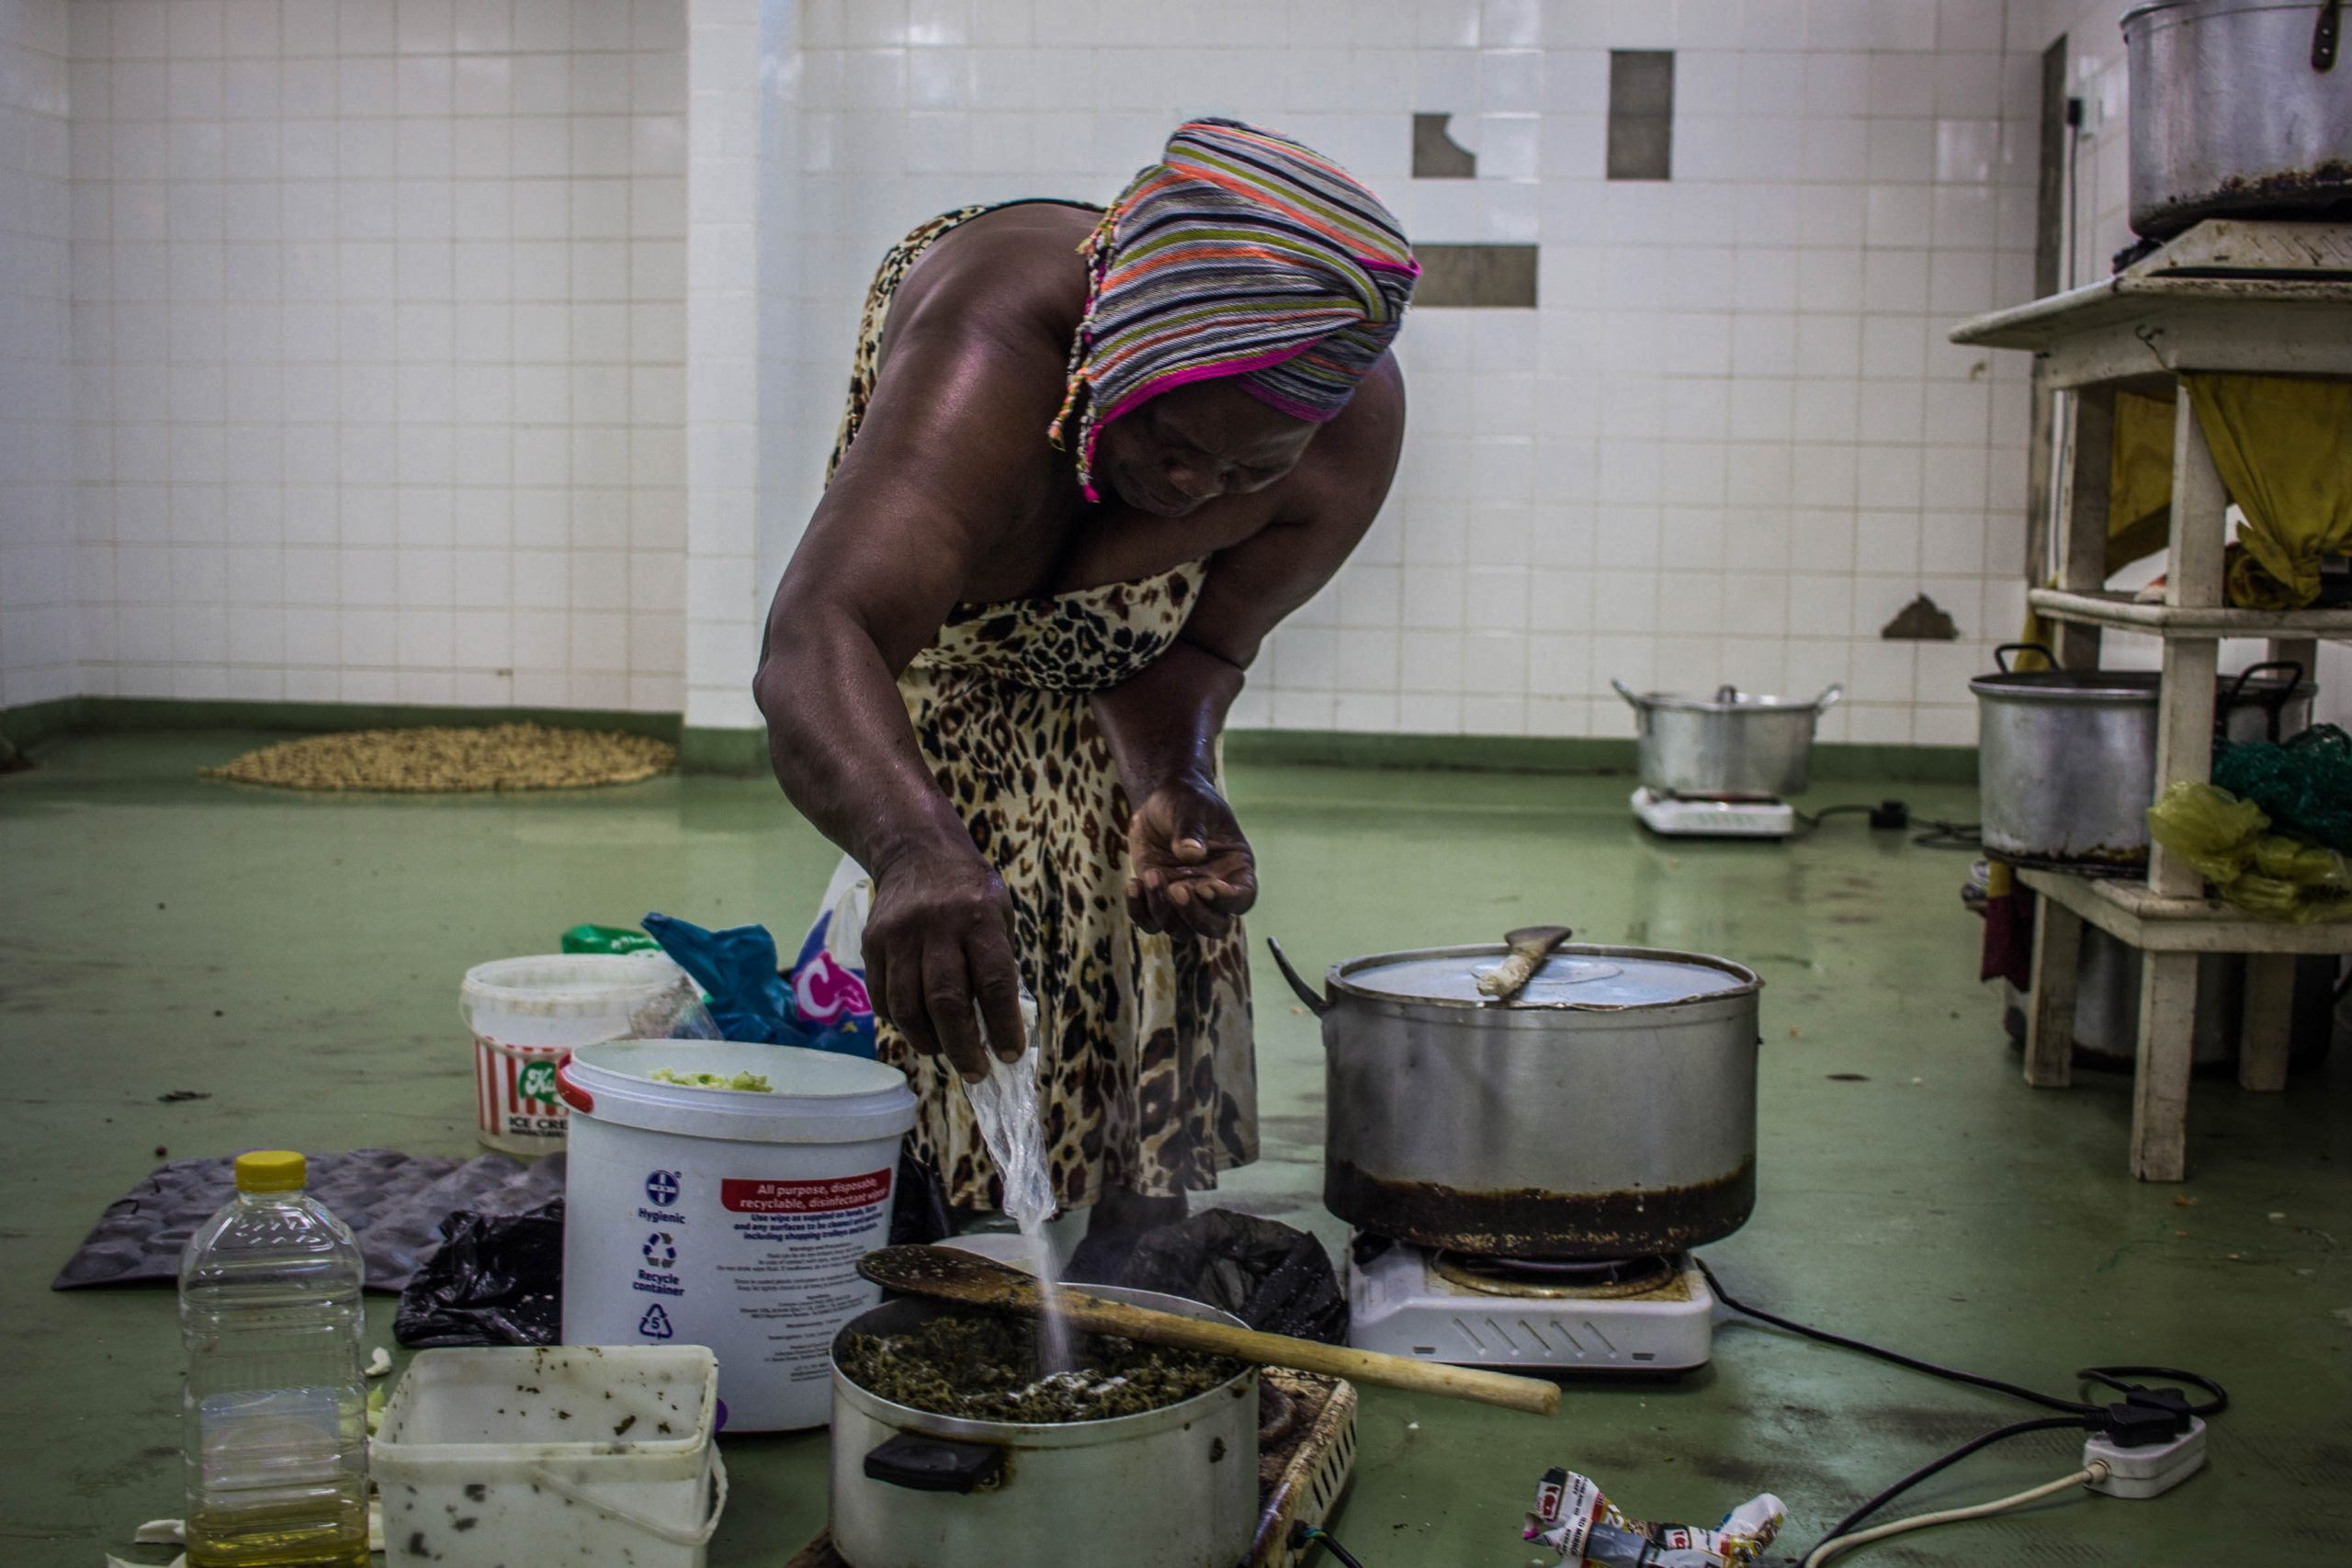 13 February 2020: Thandiwe Khathi adds salt to her food. One of the oldest women at the hostel, she wakes up at around 5am and begins to prepare food for her customers.